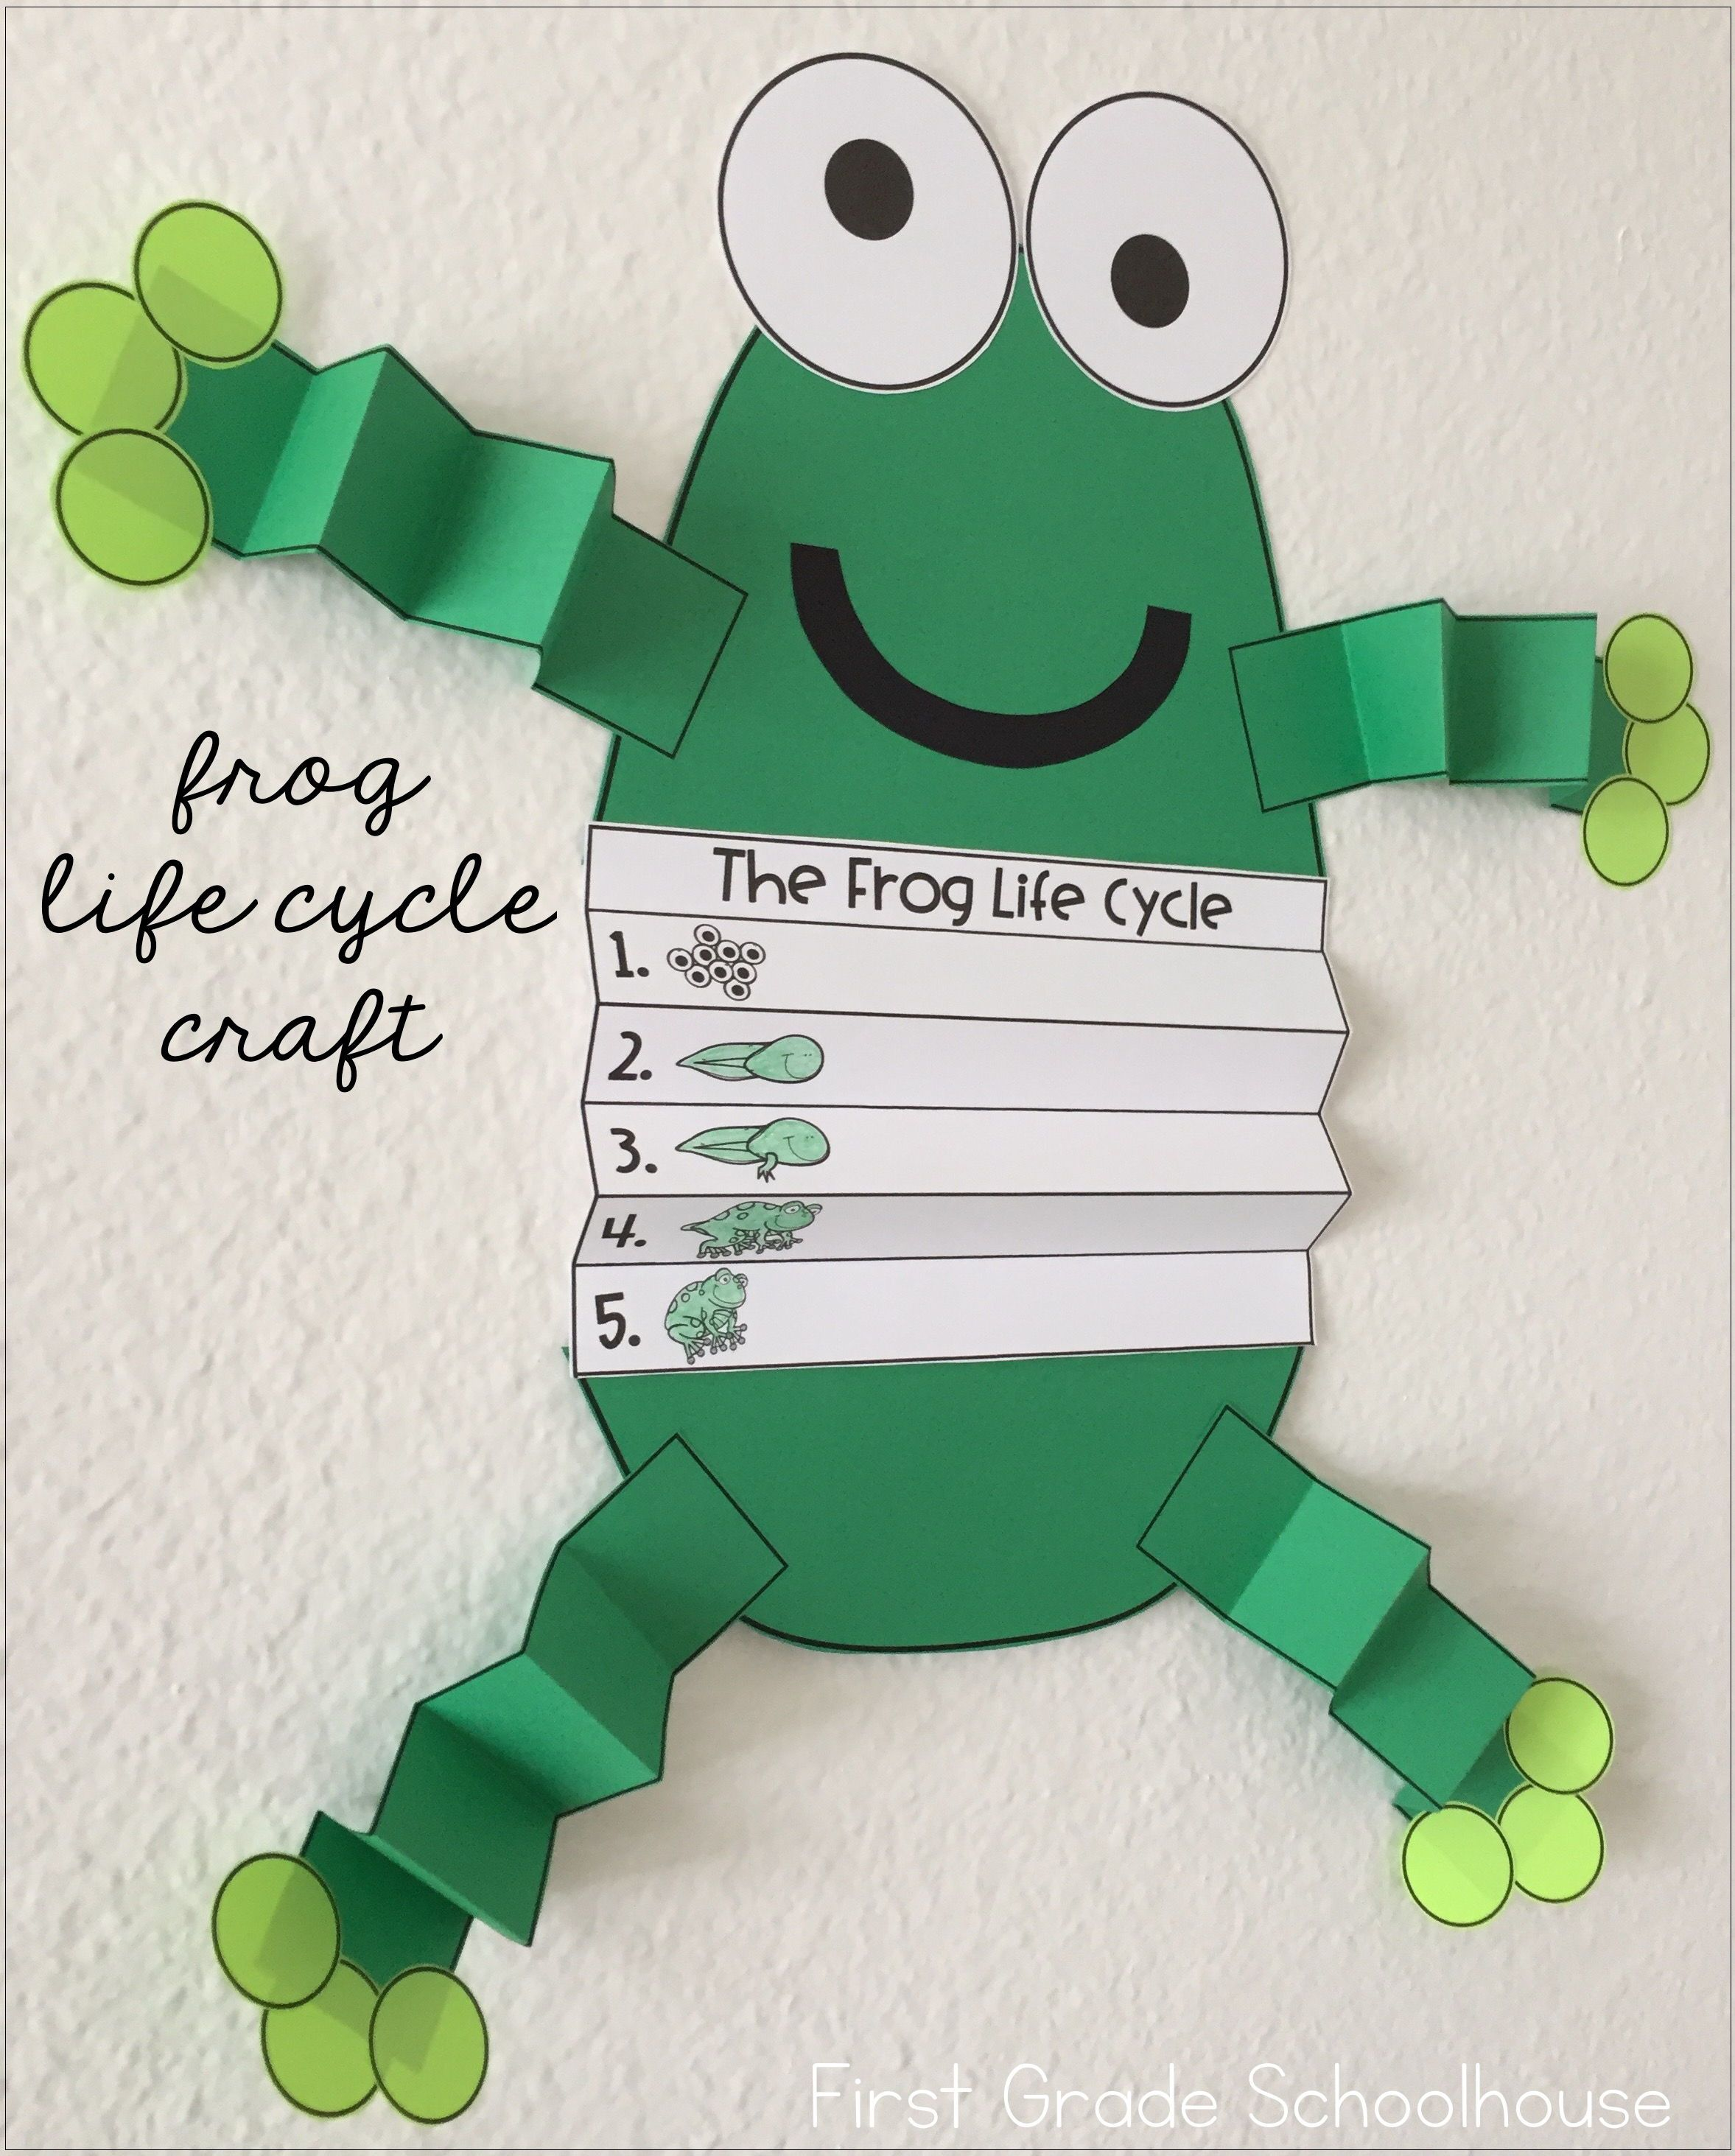 Kids Create This Frog Life Cycle Craft To Display Their Writing About The Life Cycle Of A Frog